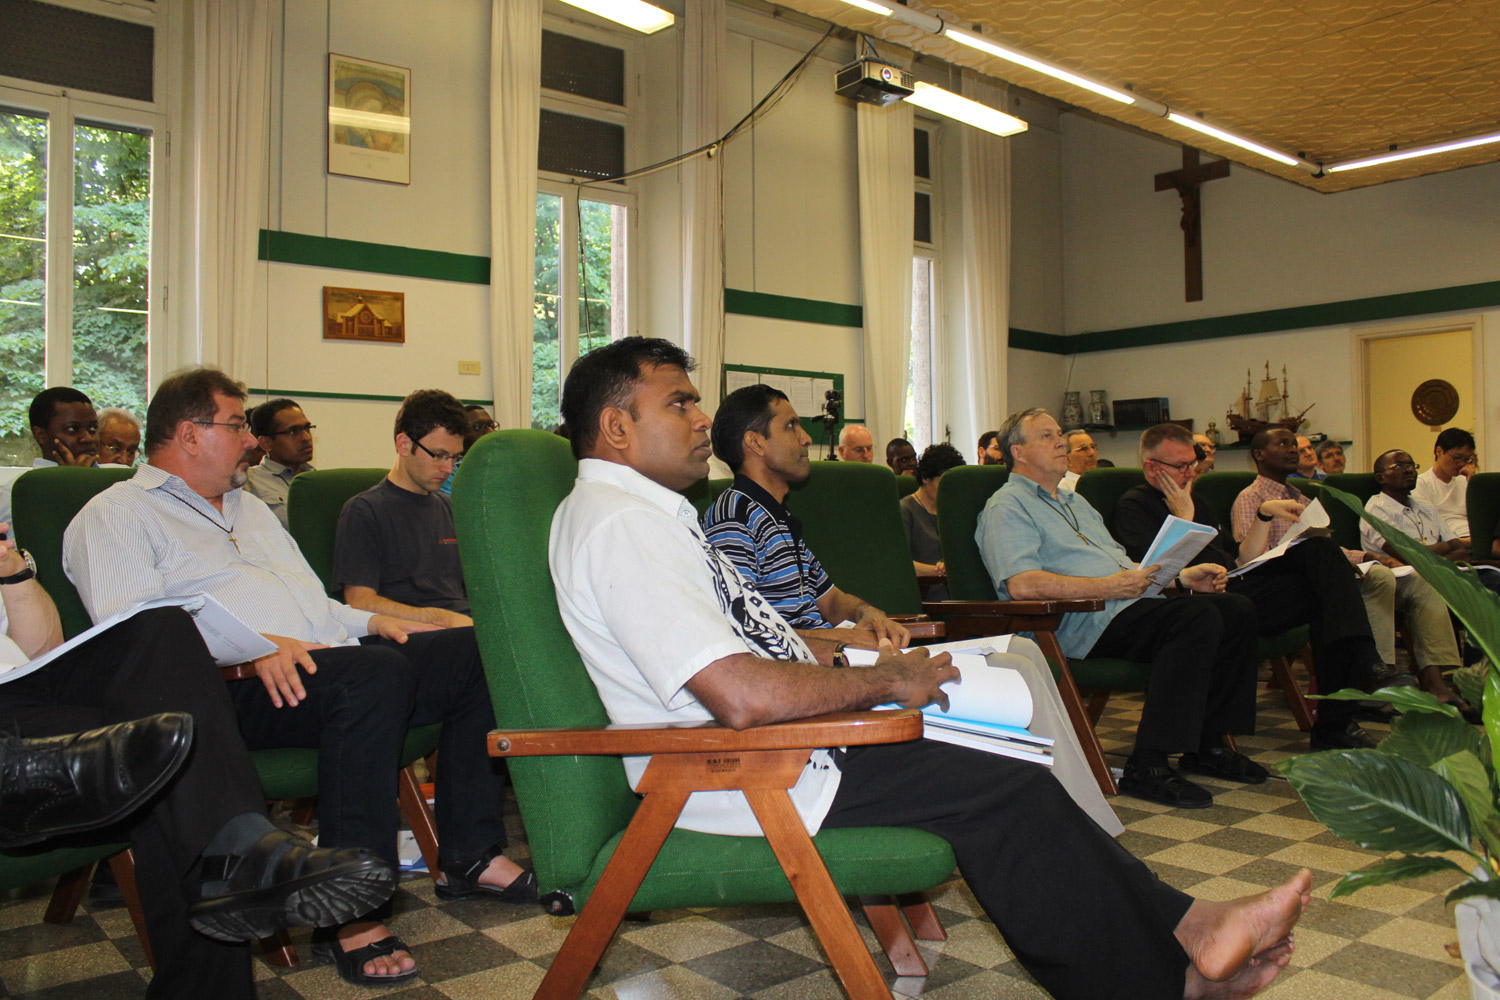 <b>Congress on Oblate Charism - first day in Rome</b><br>Some of the participants<br>Shanil Jayawardena OMI<br>June 30th, 2015